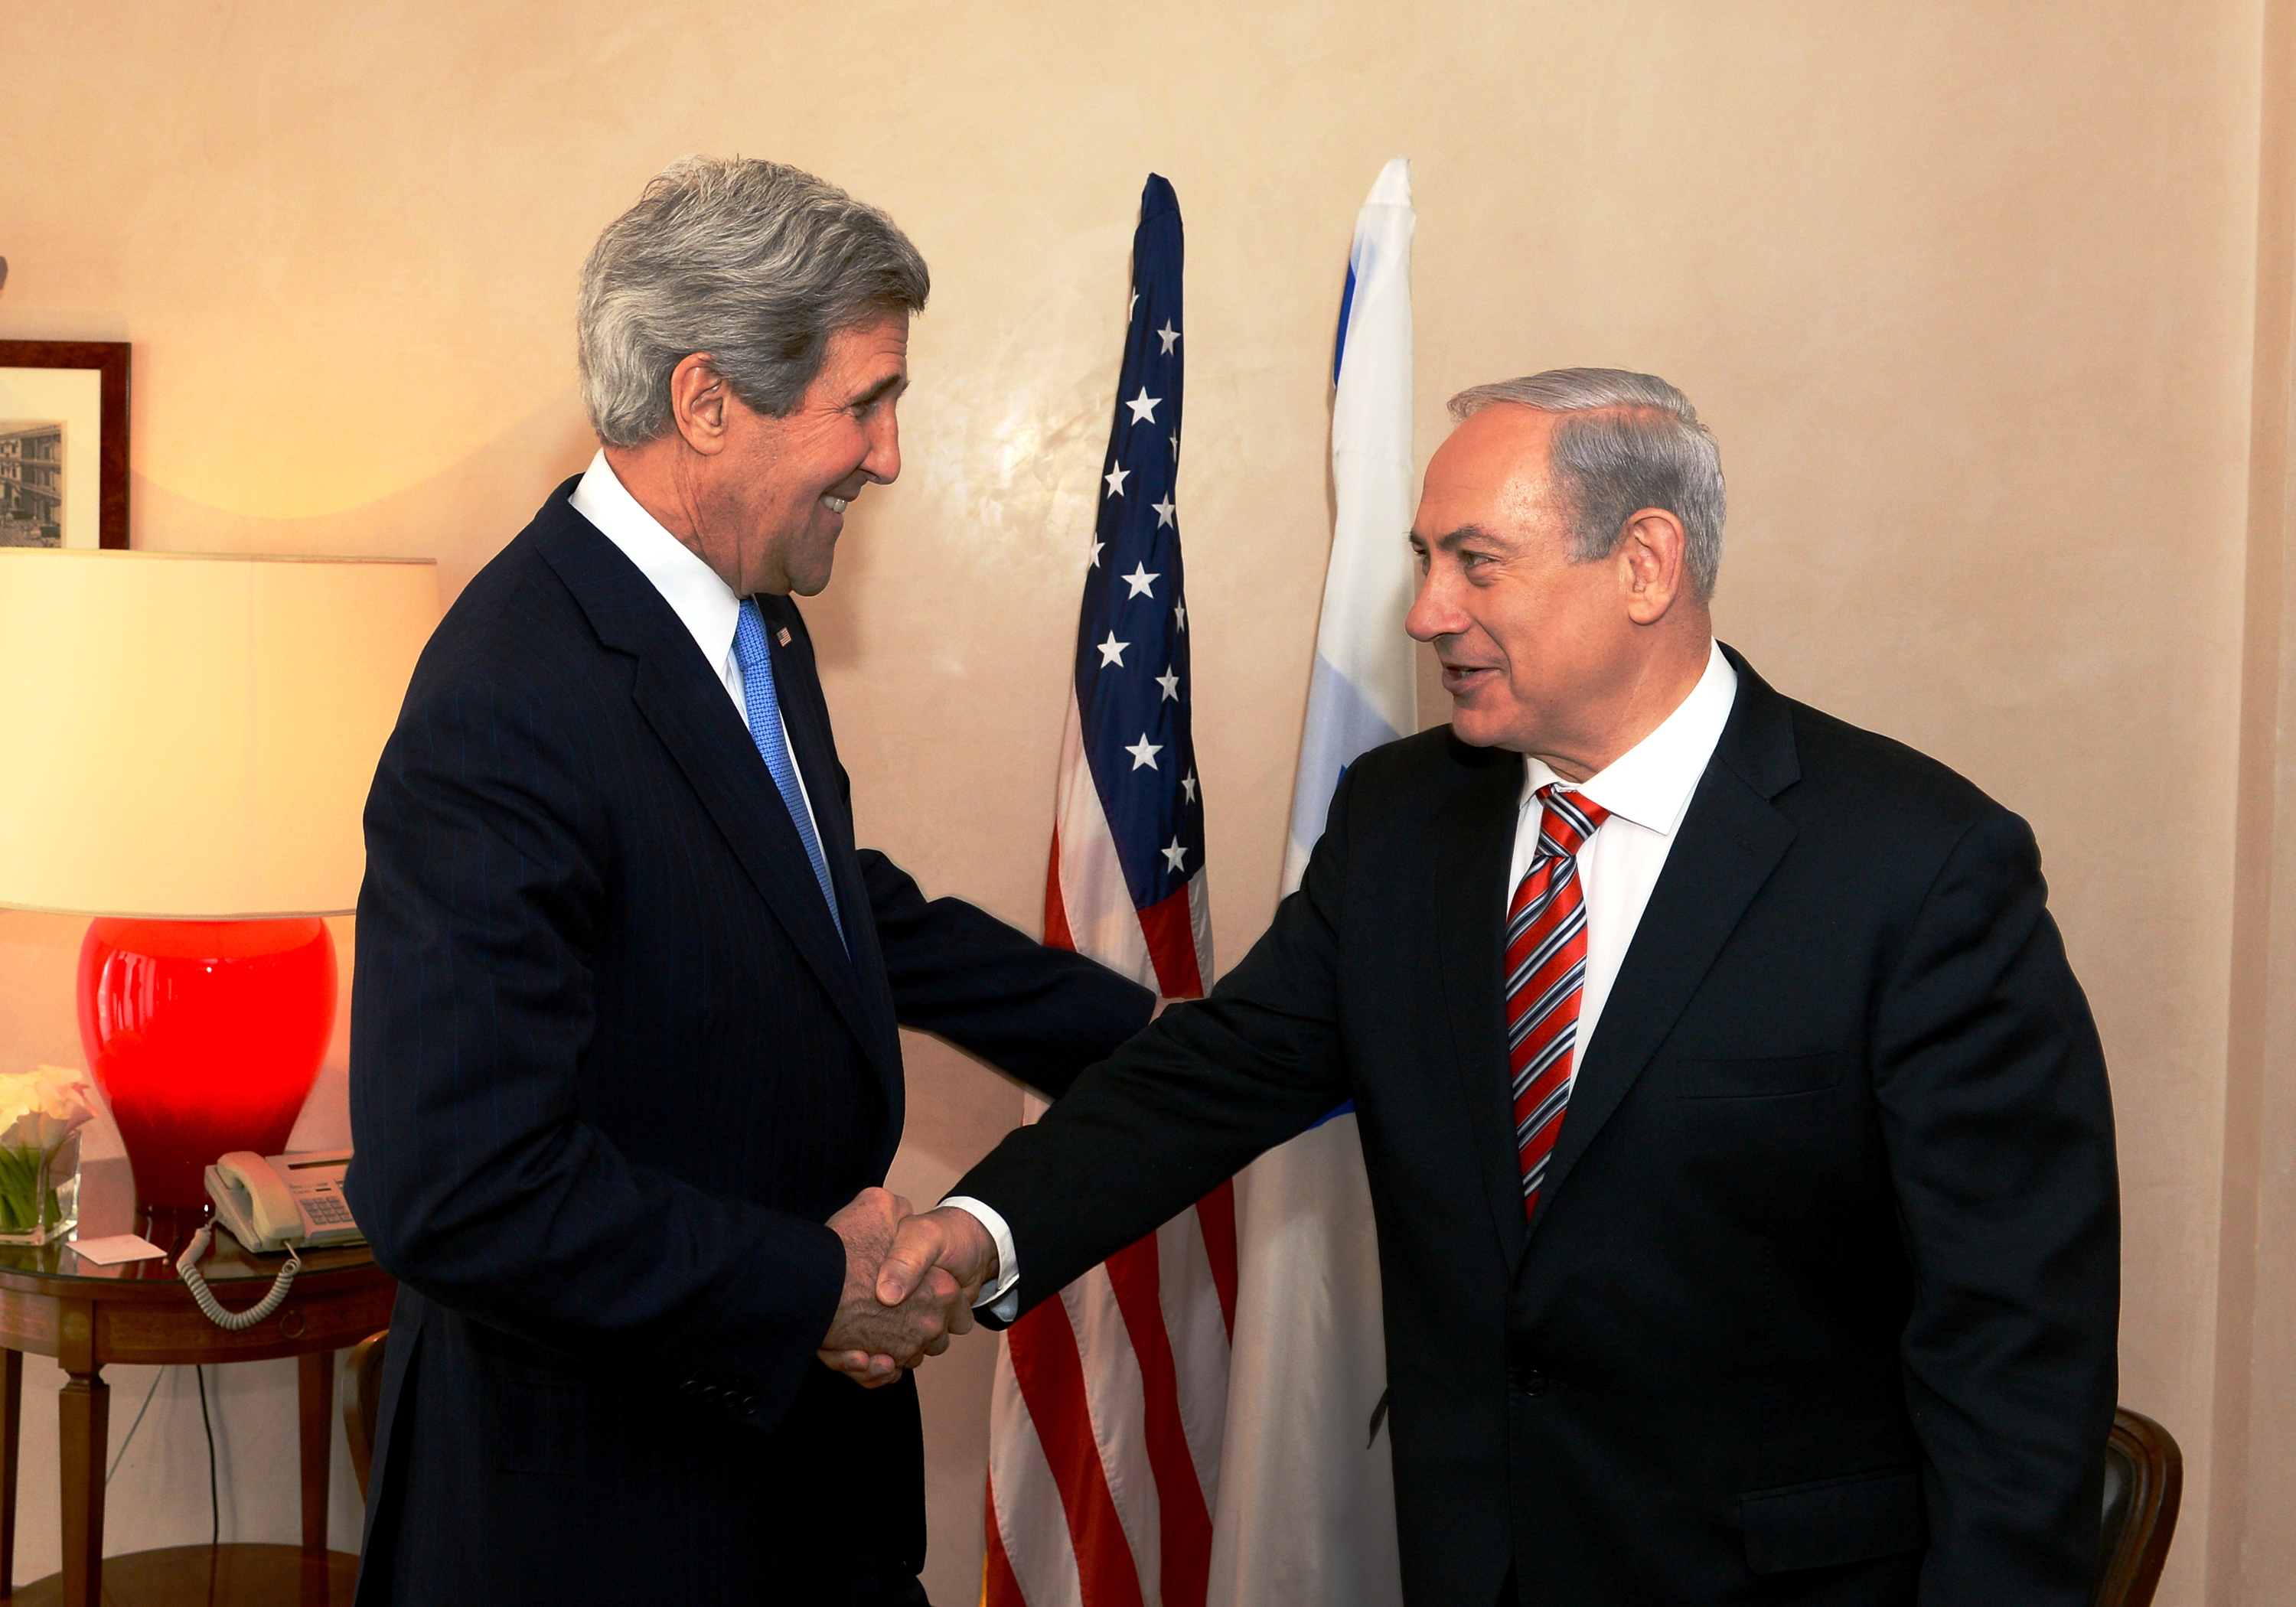 http://upload.wikimedia.org/wikipedia/commons/3/35/Secretary_Kerry_Meets_With_Israeli_Prime_Minister_Netanyahu.jpg